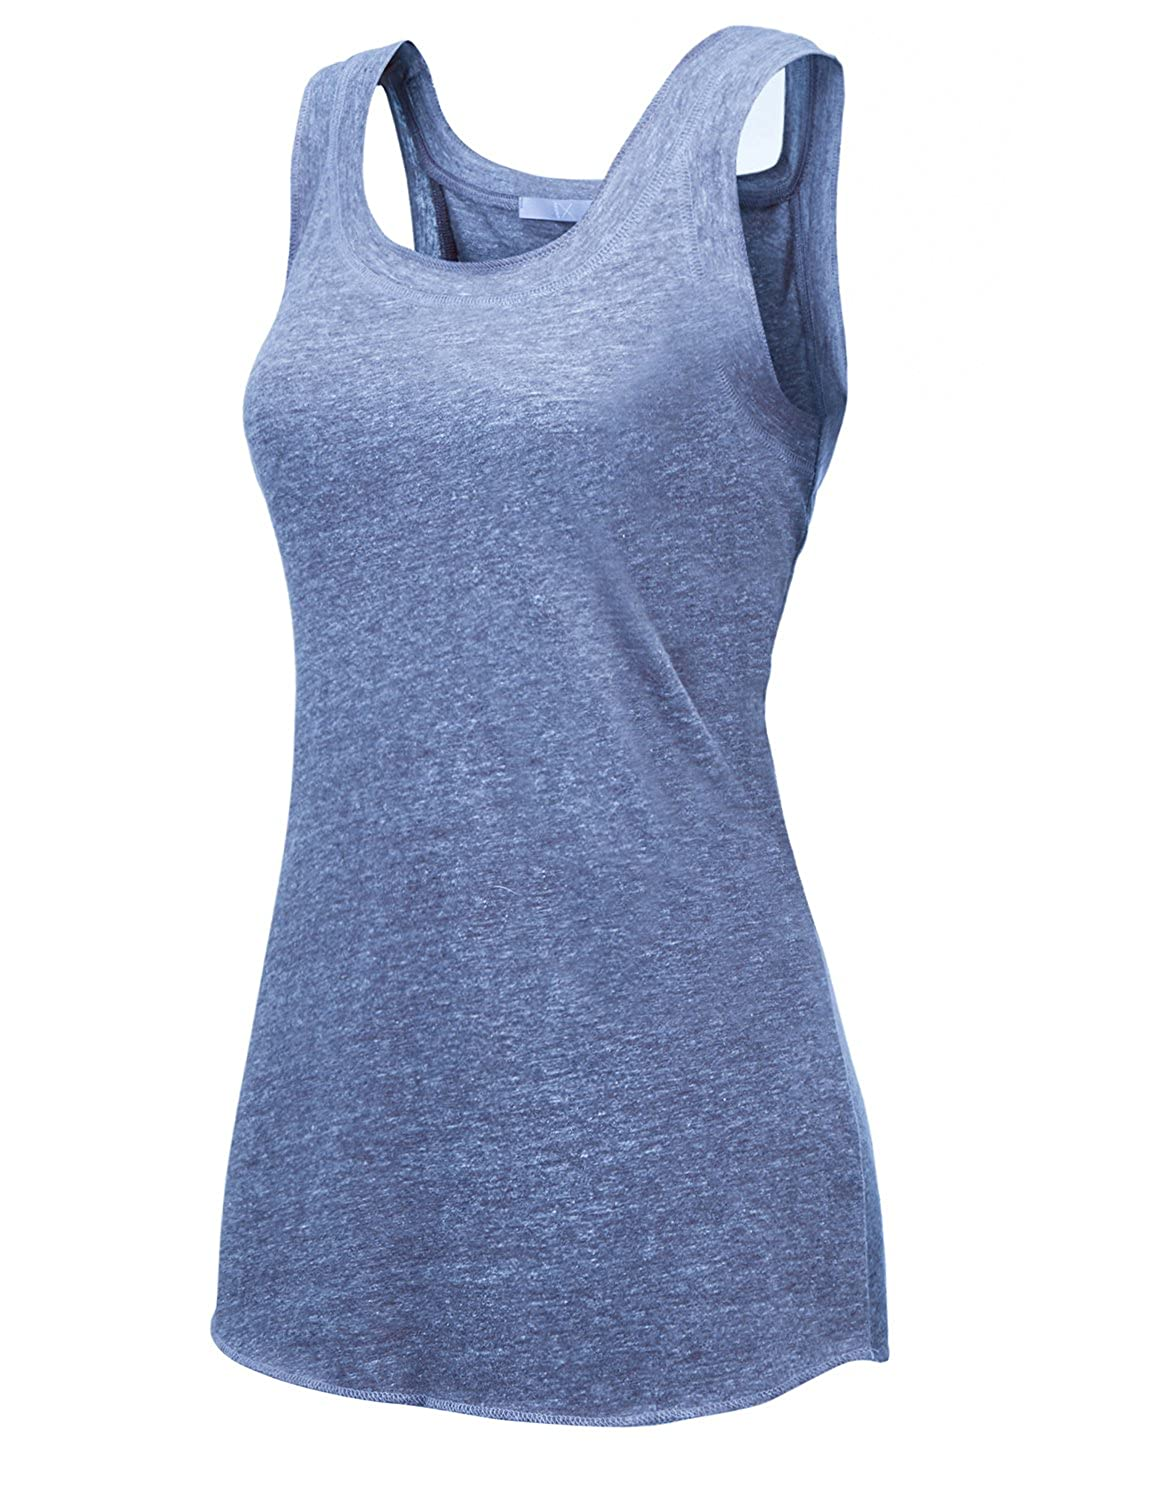 18504_bluee Regna X [RESTOCK Activewear Running Workouts Clothes Yoga Racerback Tank Tops for Women